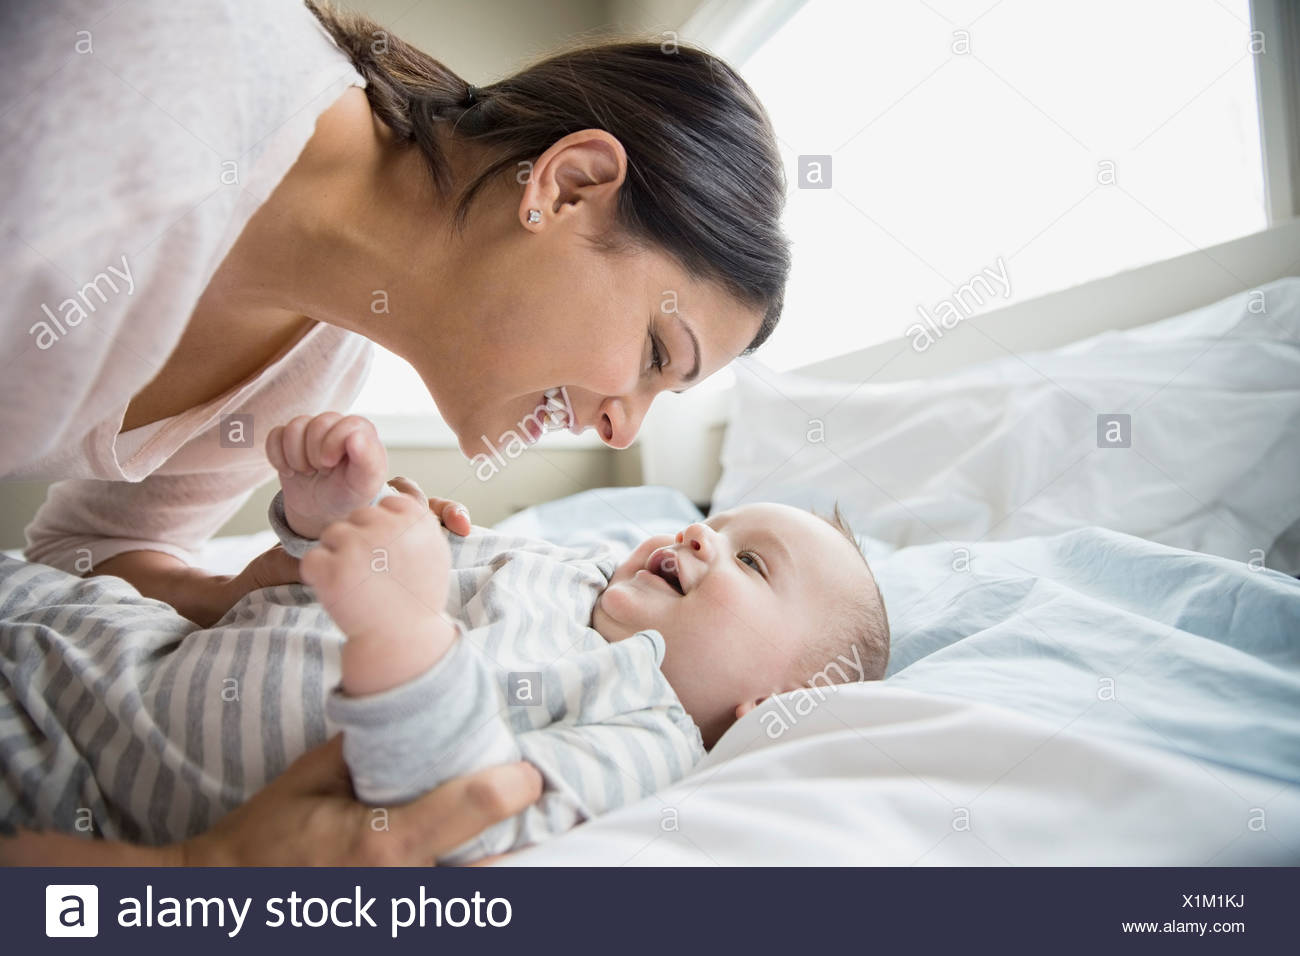 Mother and baby on bed - Stock Image